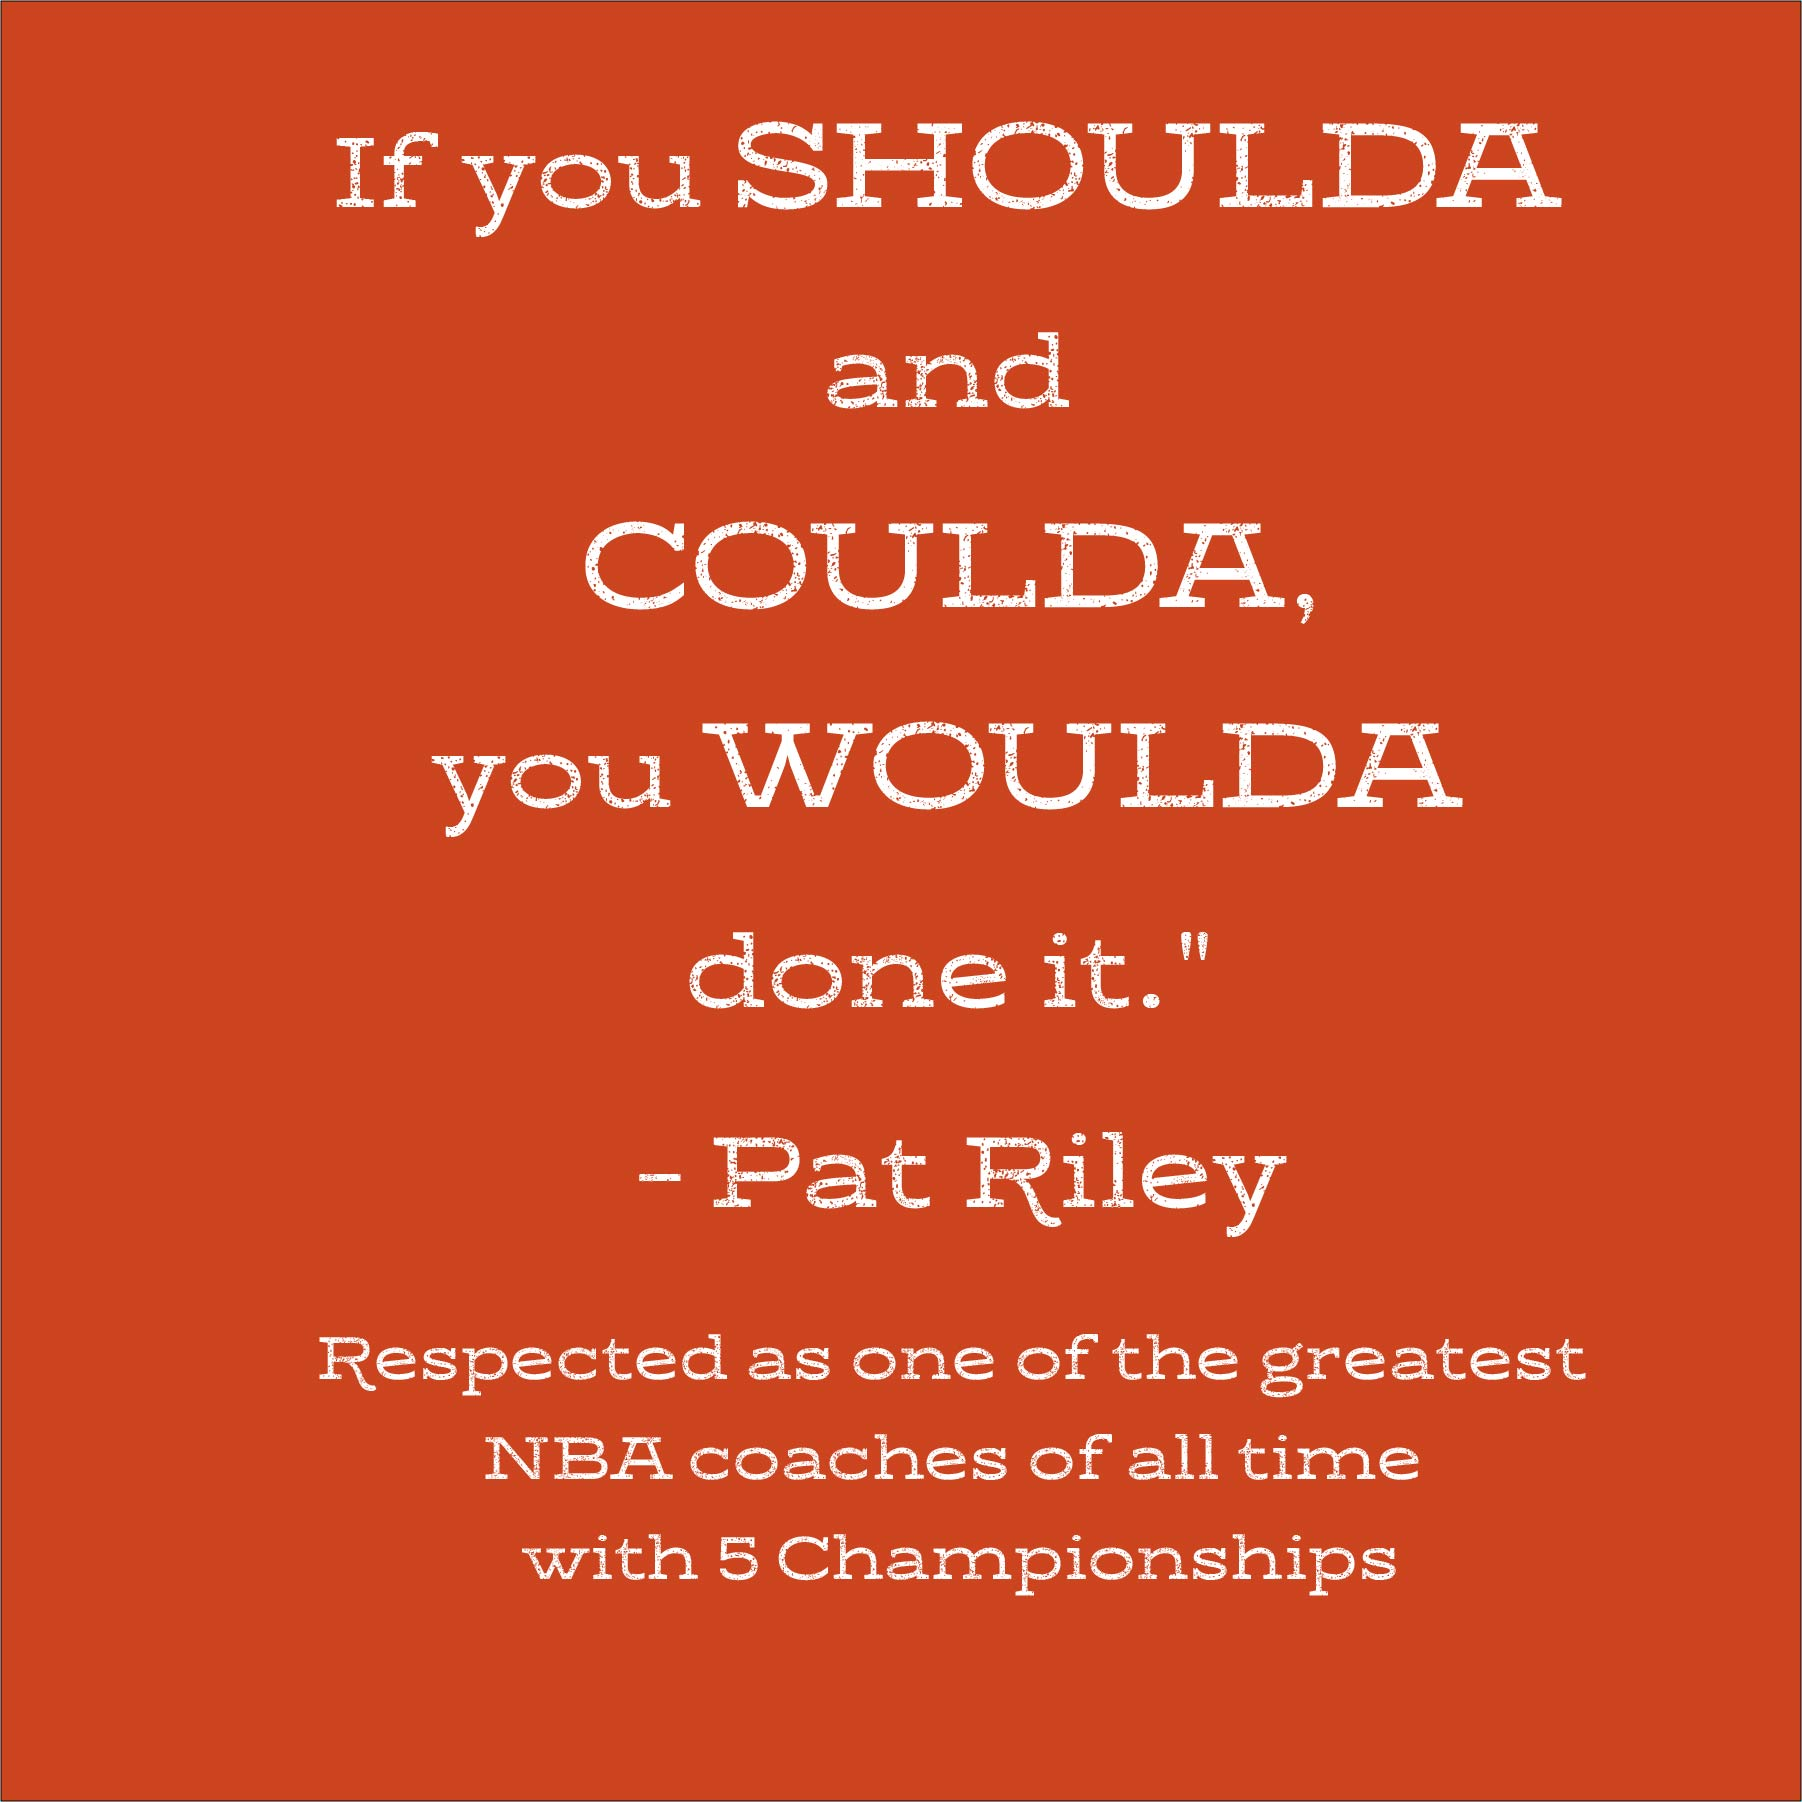 "[Image] If you SHOULDA and COULDA, you WOULDA done it."" – Pat Riley"